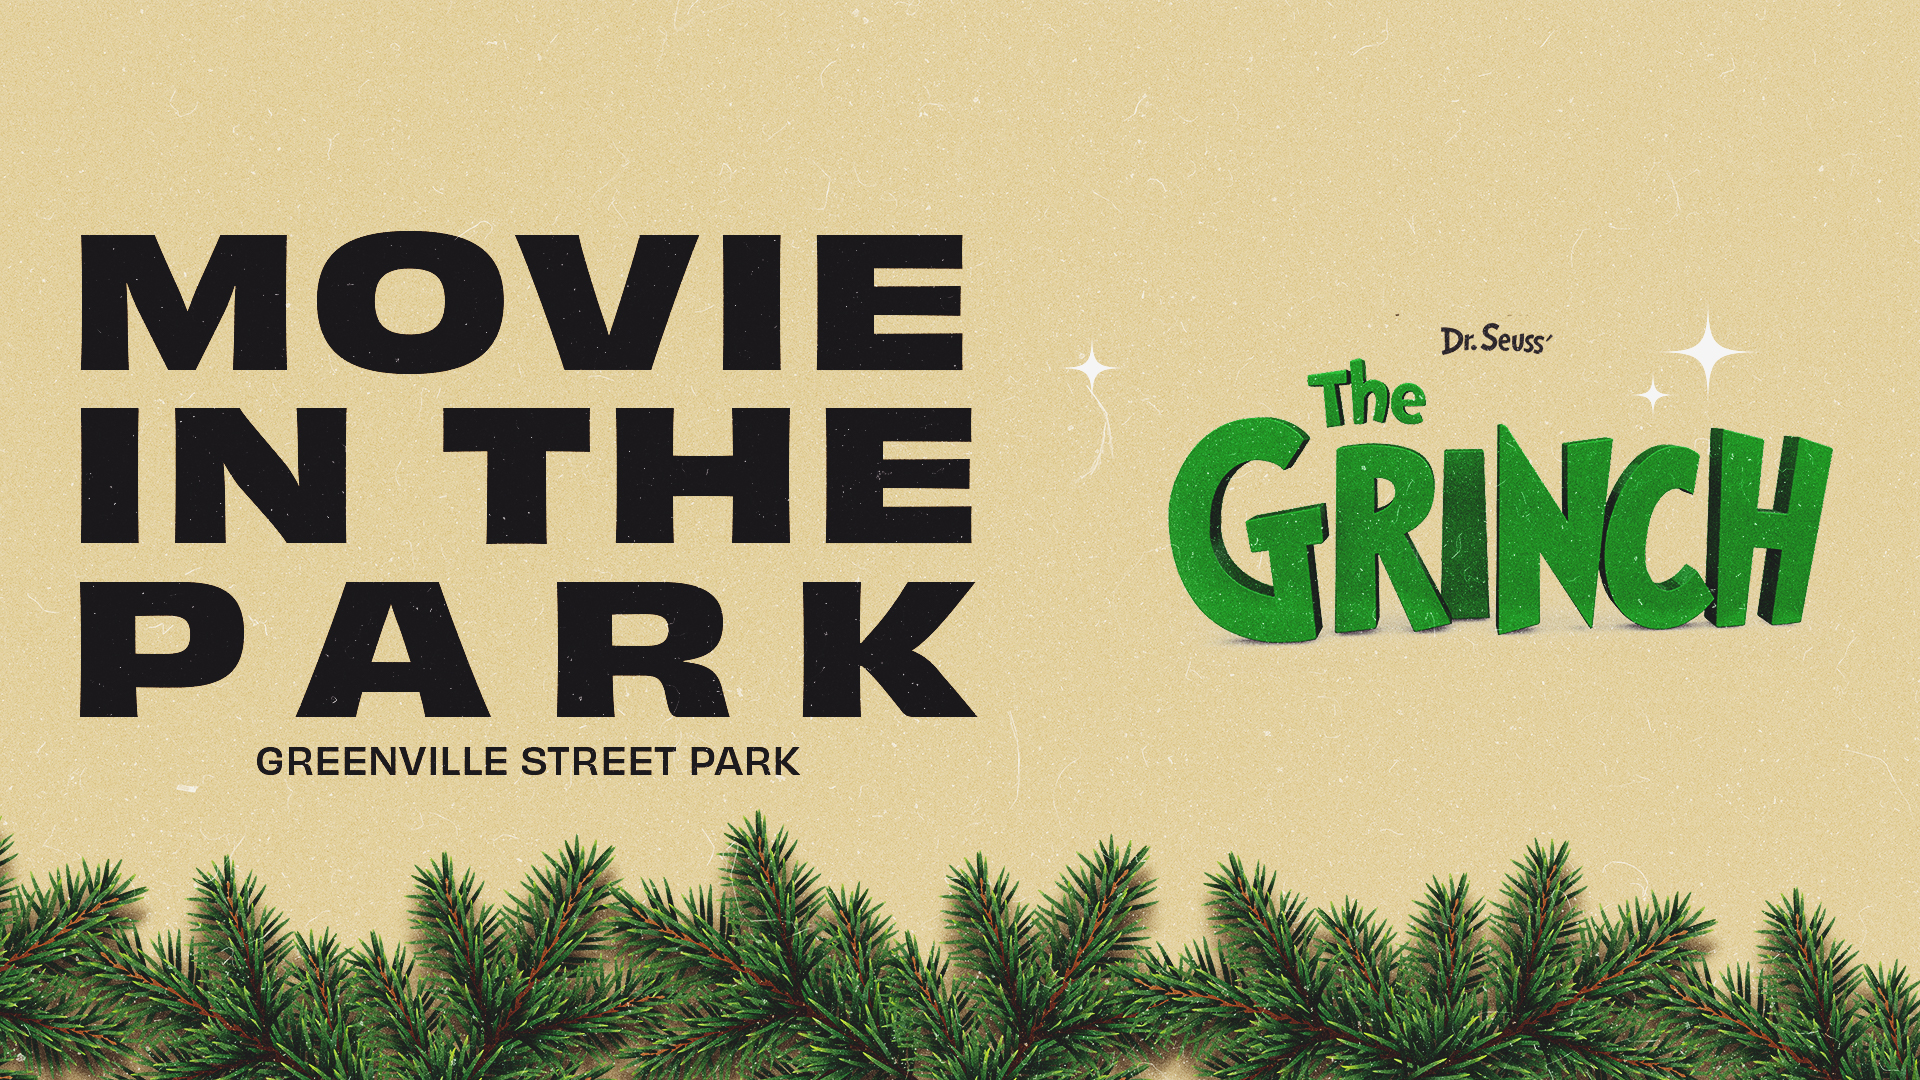 Movie In The Park: The Grinch